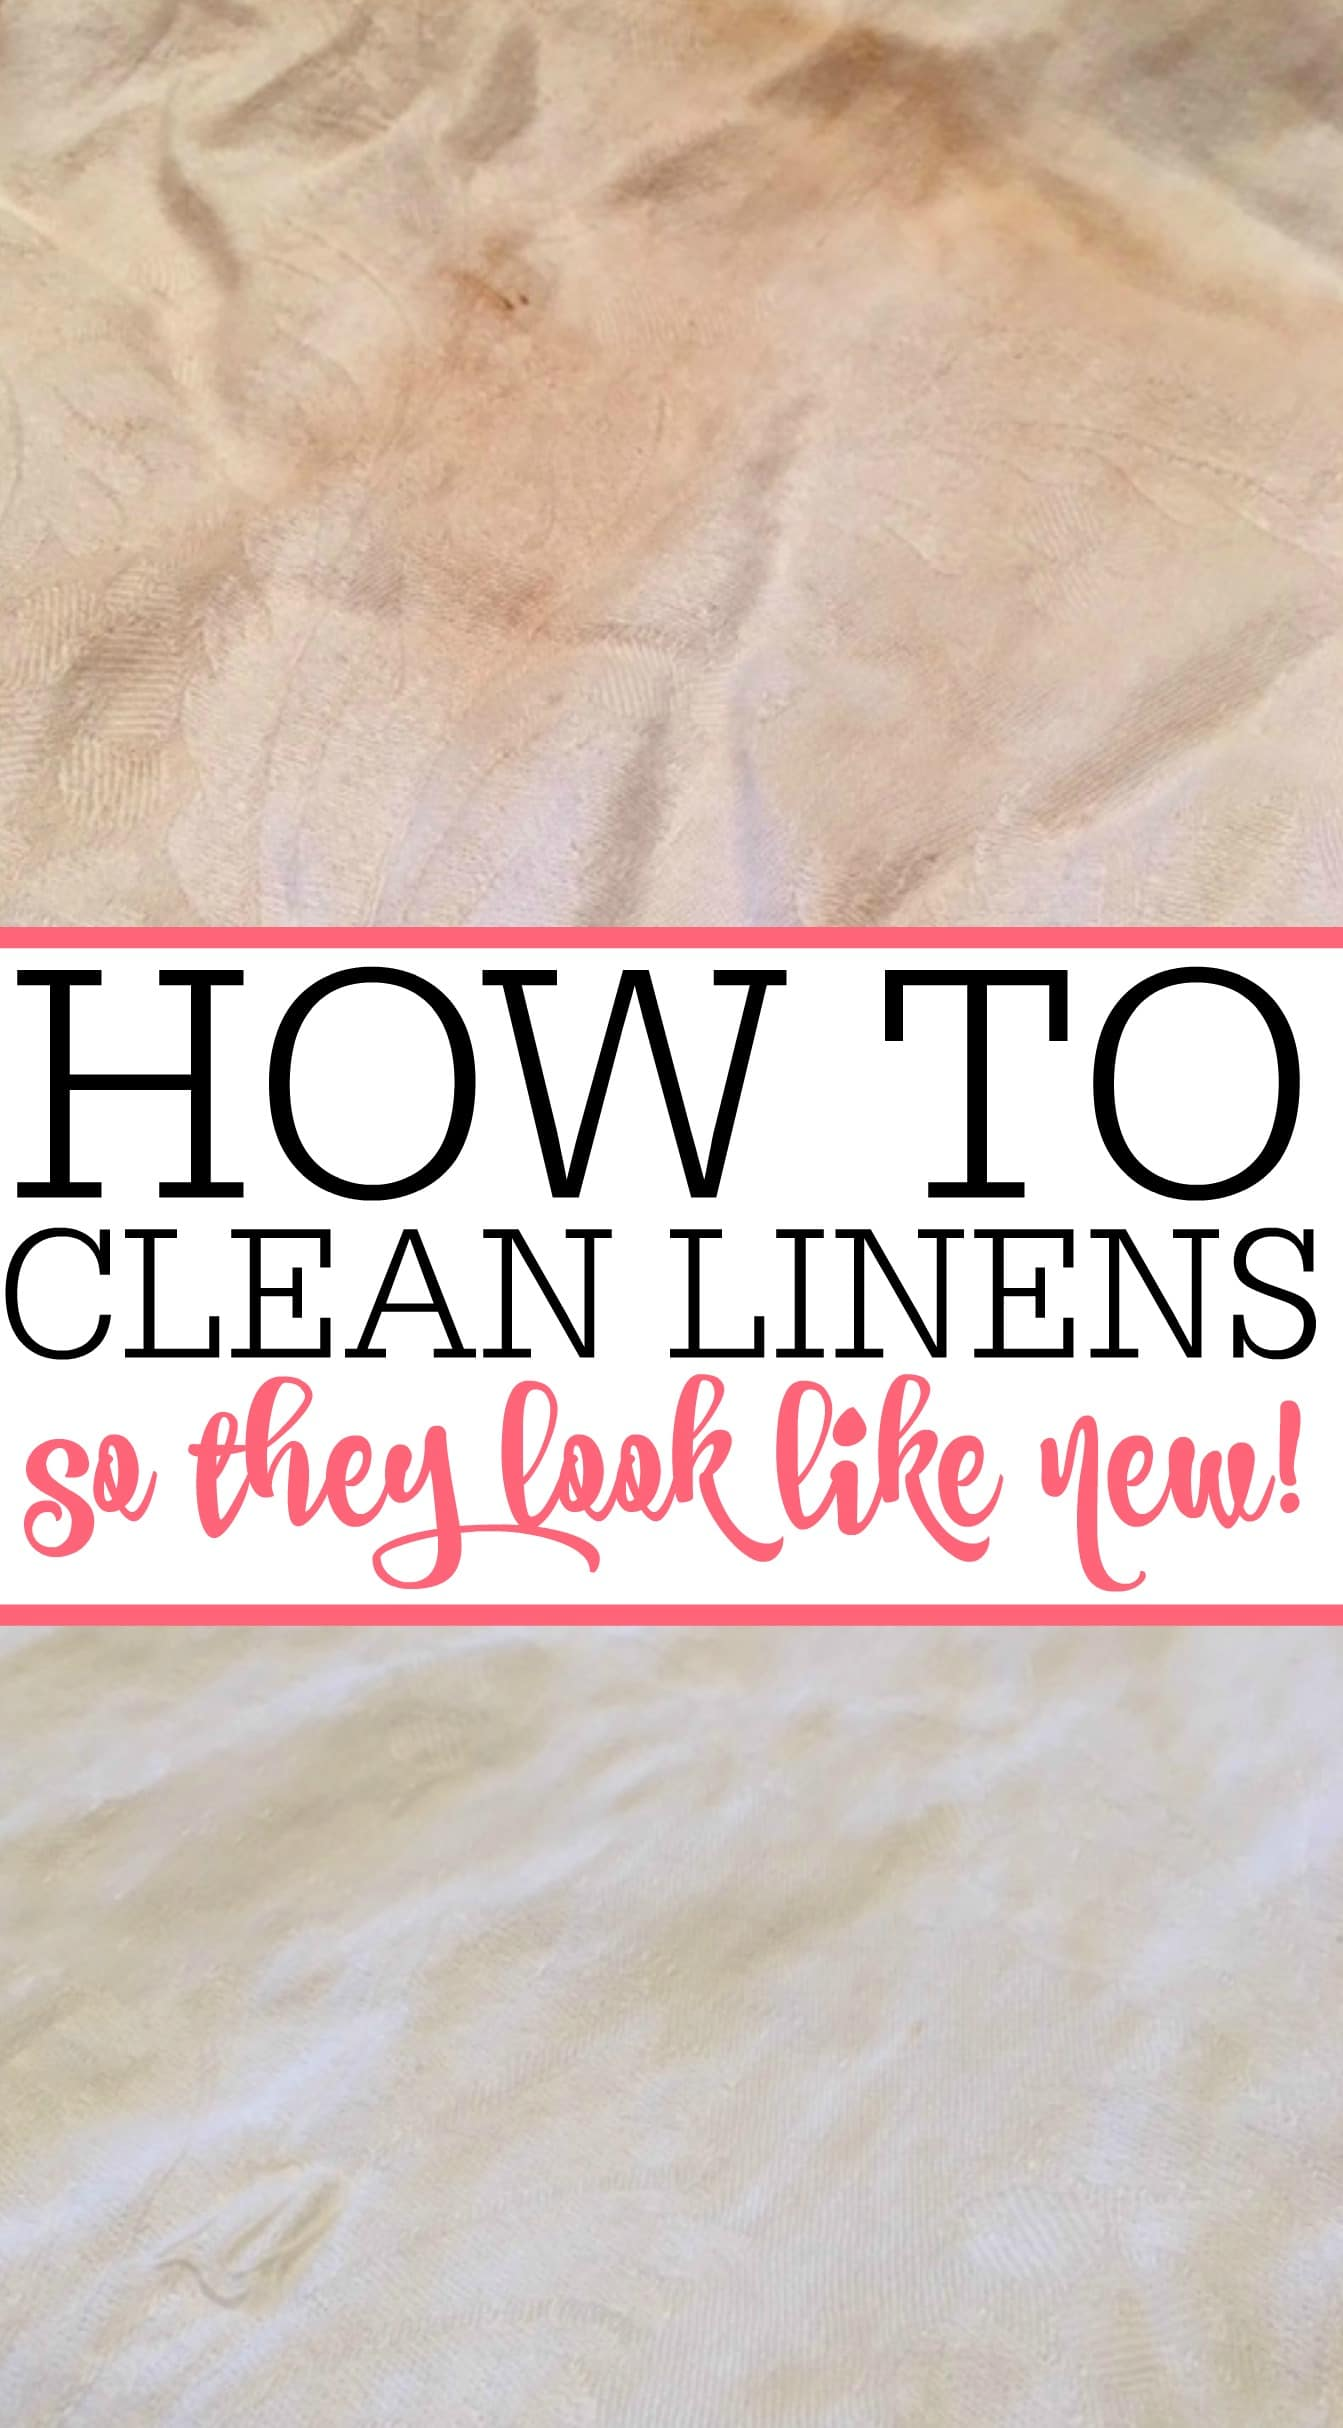 Need help with cleaning linens? Get those yellowed linens clean again. Check out cleaning linens so they look like new again.